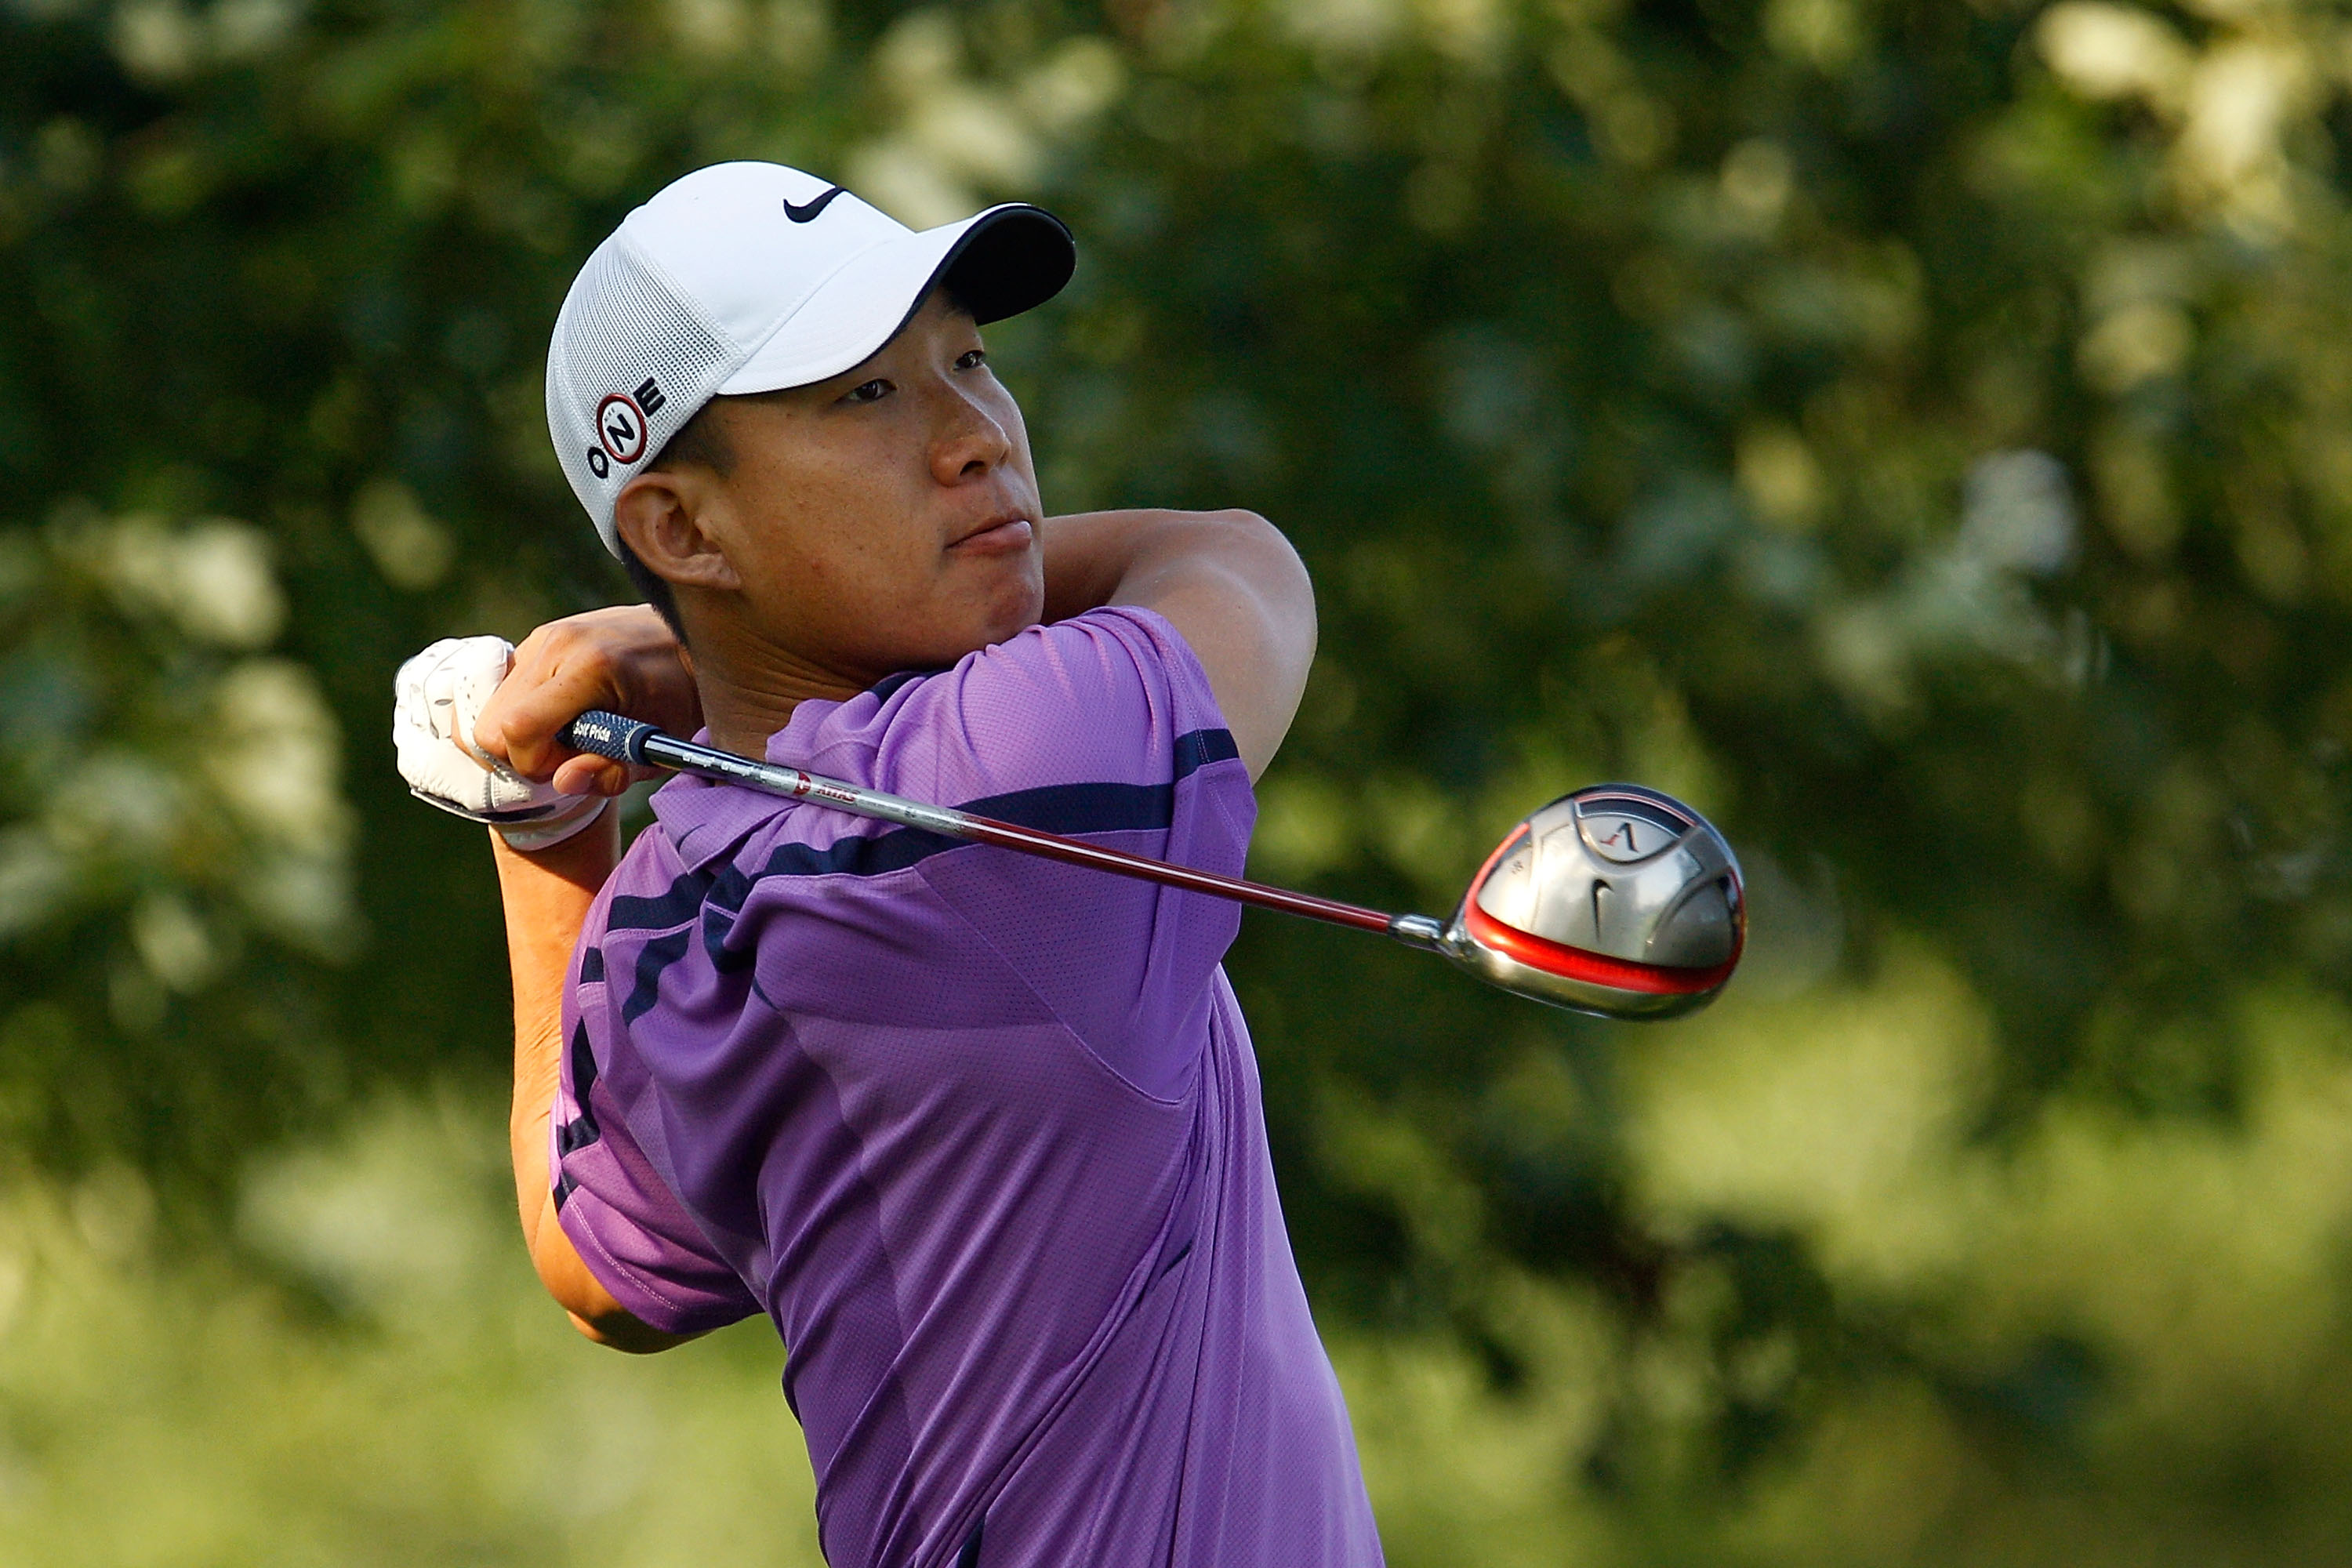 PARAMUS, NJ - AUGUST 26:  Anthony Kim watches his tee shot on the 11th hole during the first round of The Barclays at the Ridgewood Country Club on August 26, 2010 in Paramus, New Jersey.  (Photo by Scott Halleran/Getty Images)